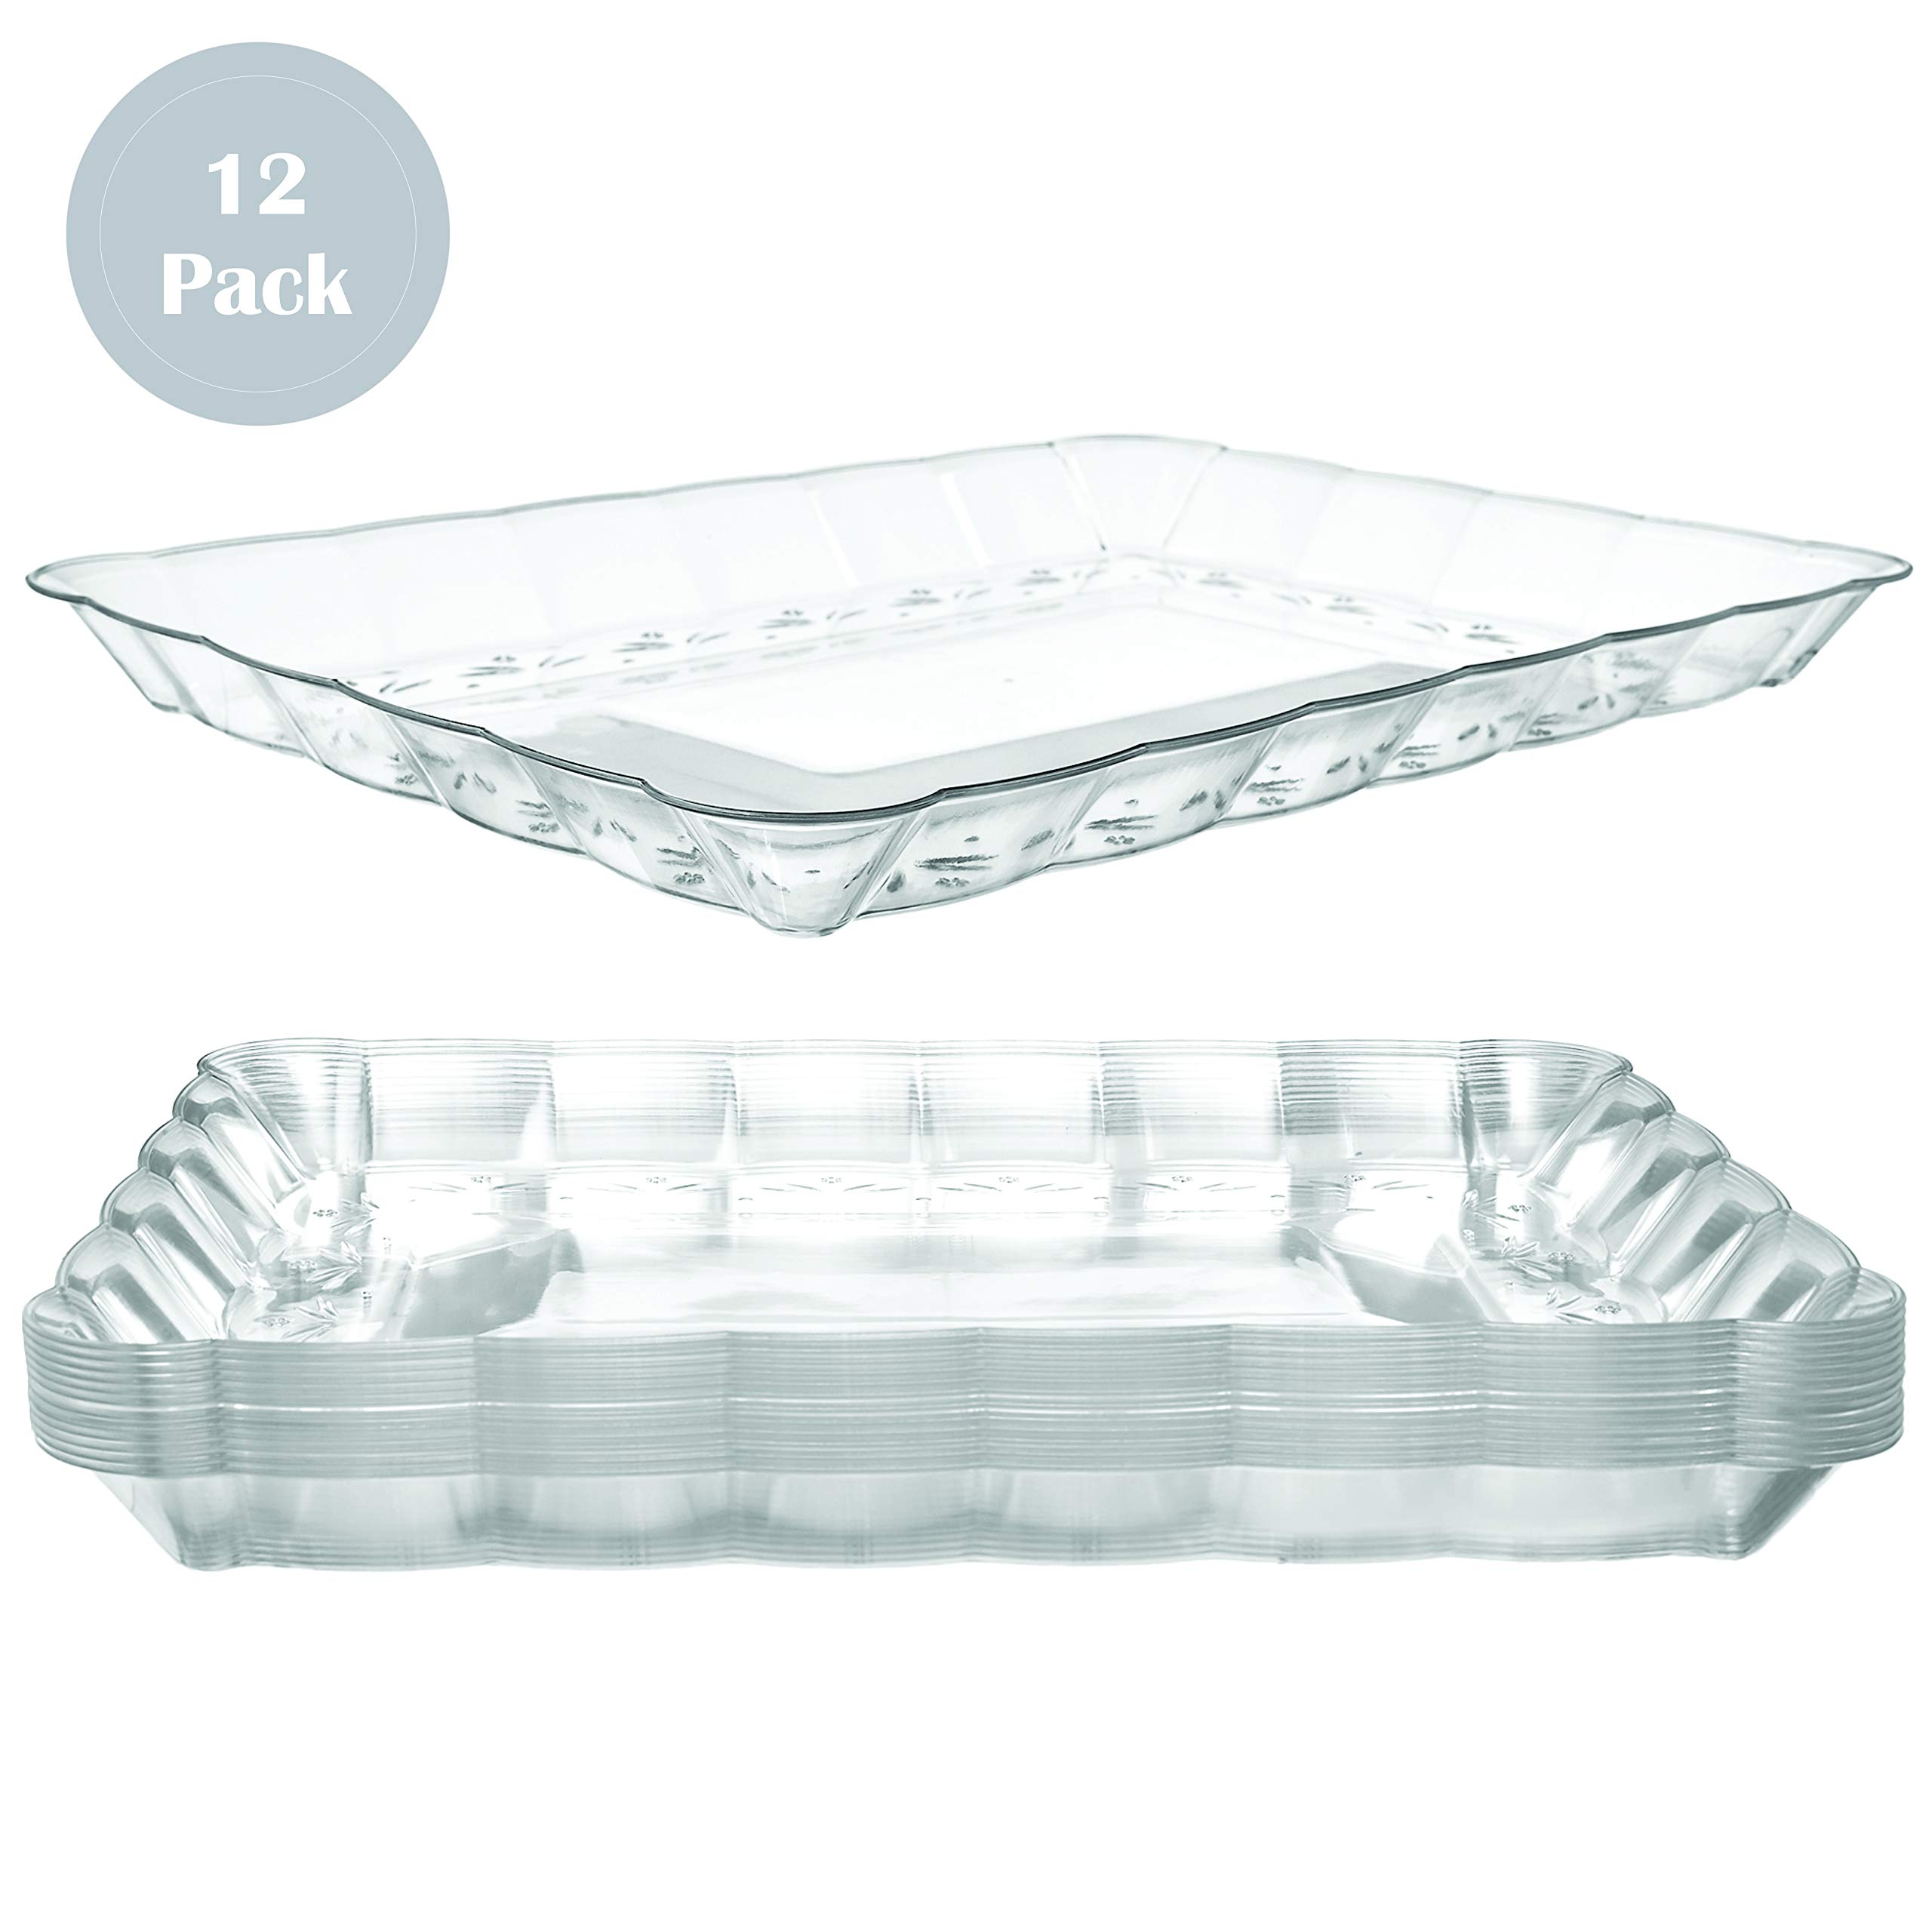 Plastic Serving Trays - Serving Platters | 12 Pack, 9''X13'' | Rectangular Disposable Party Platters and Trays | Clear Disposable Serving Trays for Parties | Party Serving Trays and Platters by Prestee